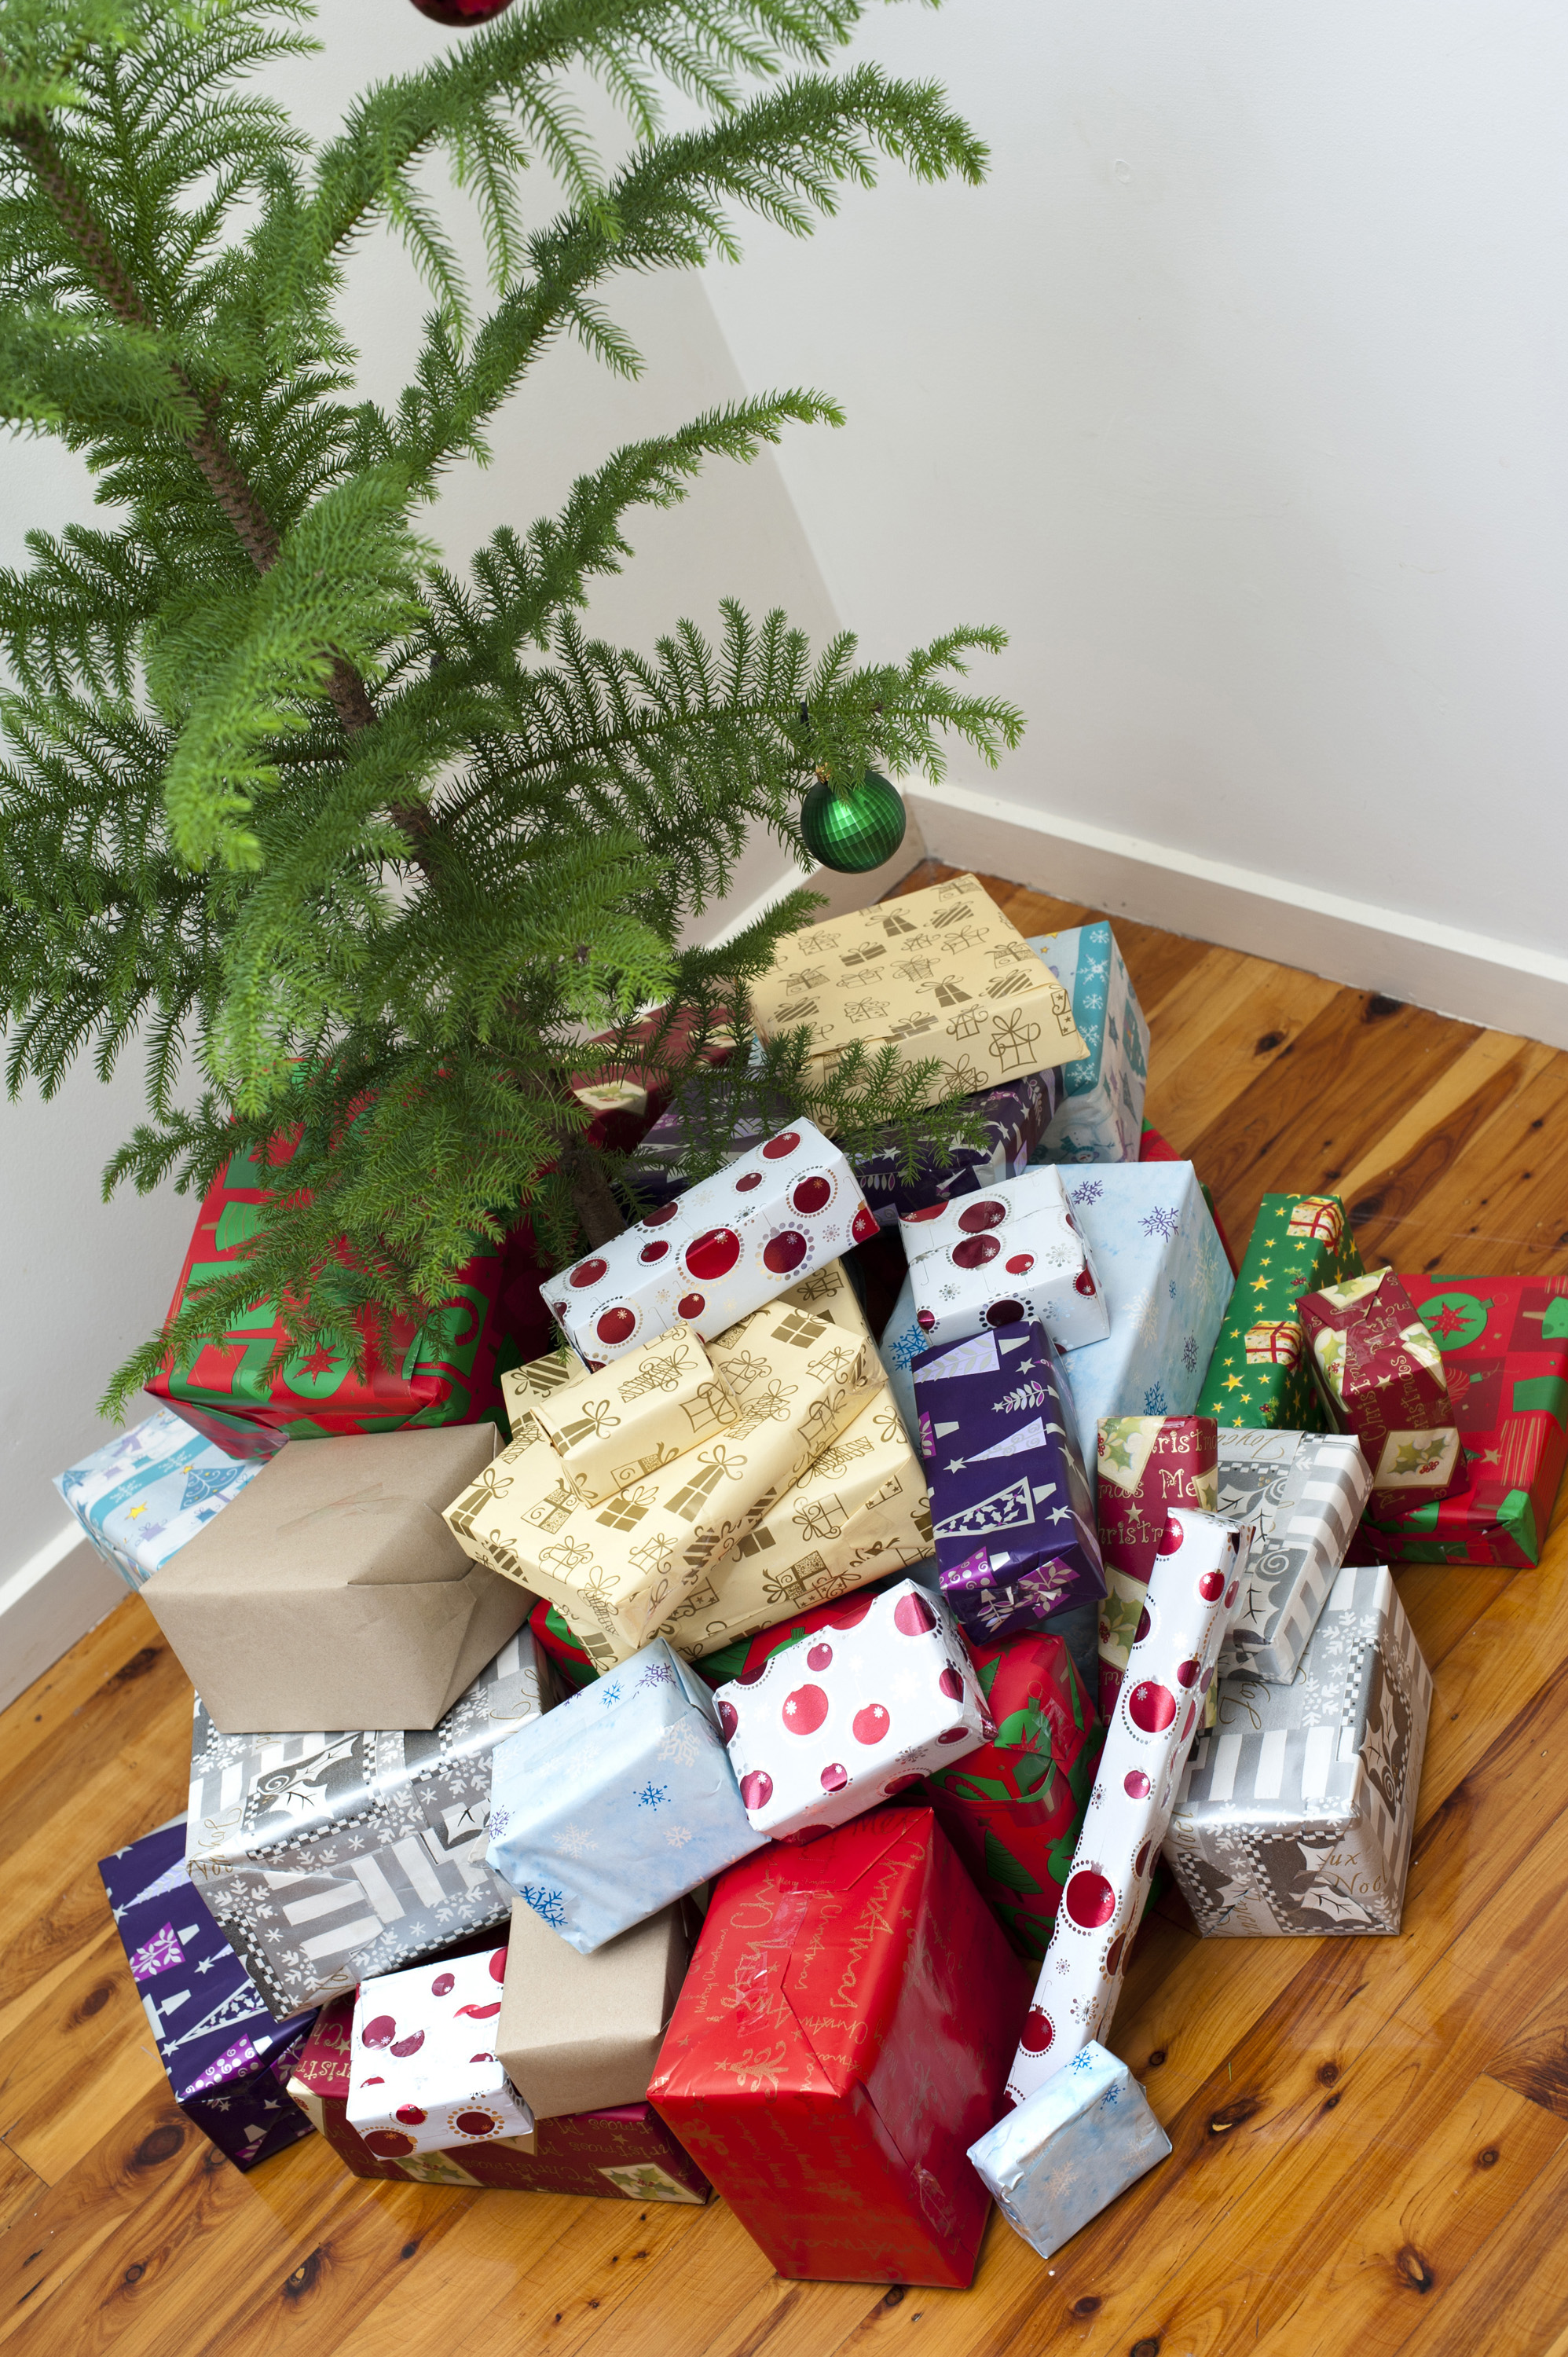 Large collection of colourful gift-wrapped Christmas gifts under a small Xmas tree in preparation for a family celebration of the festive season